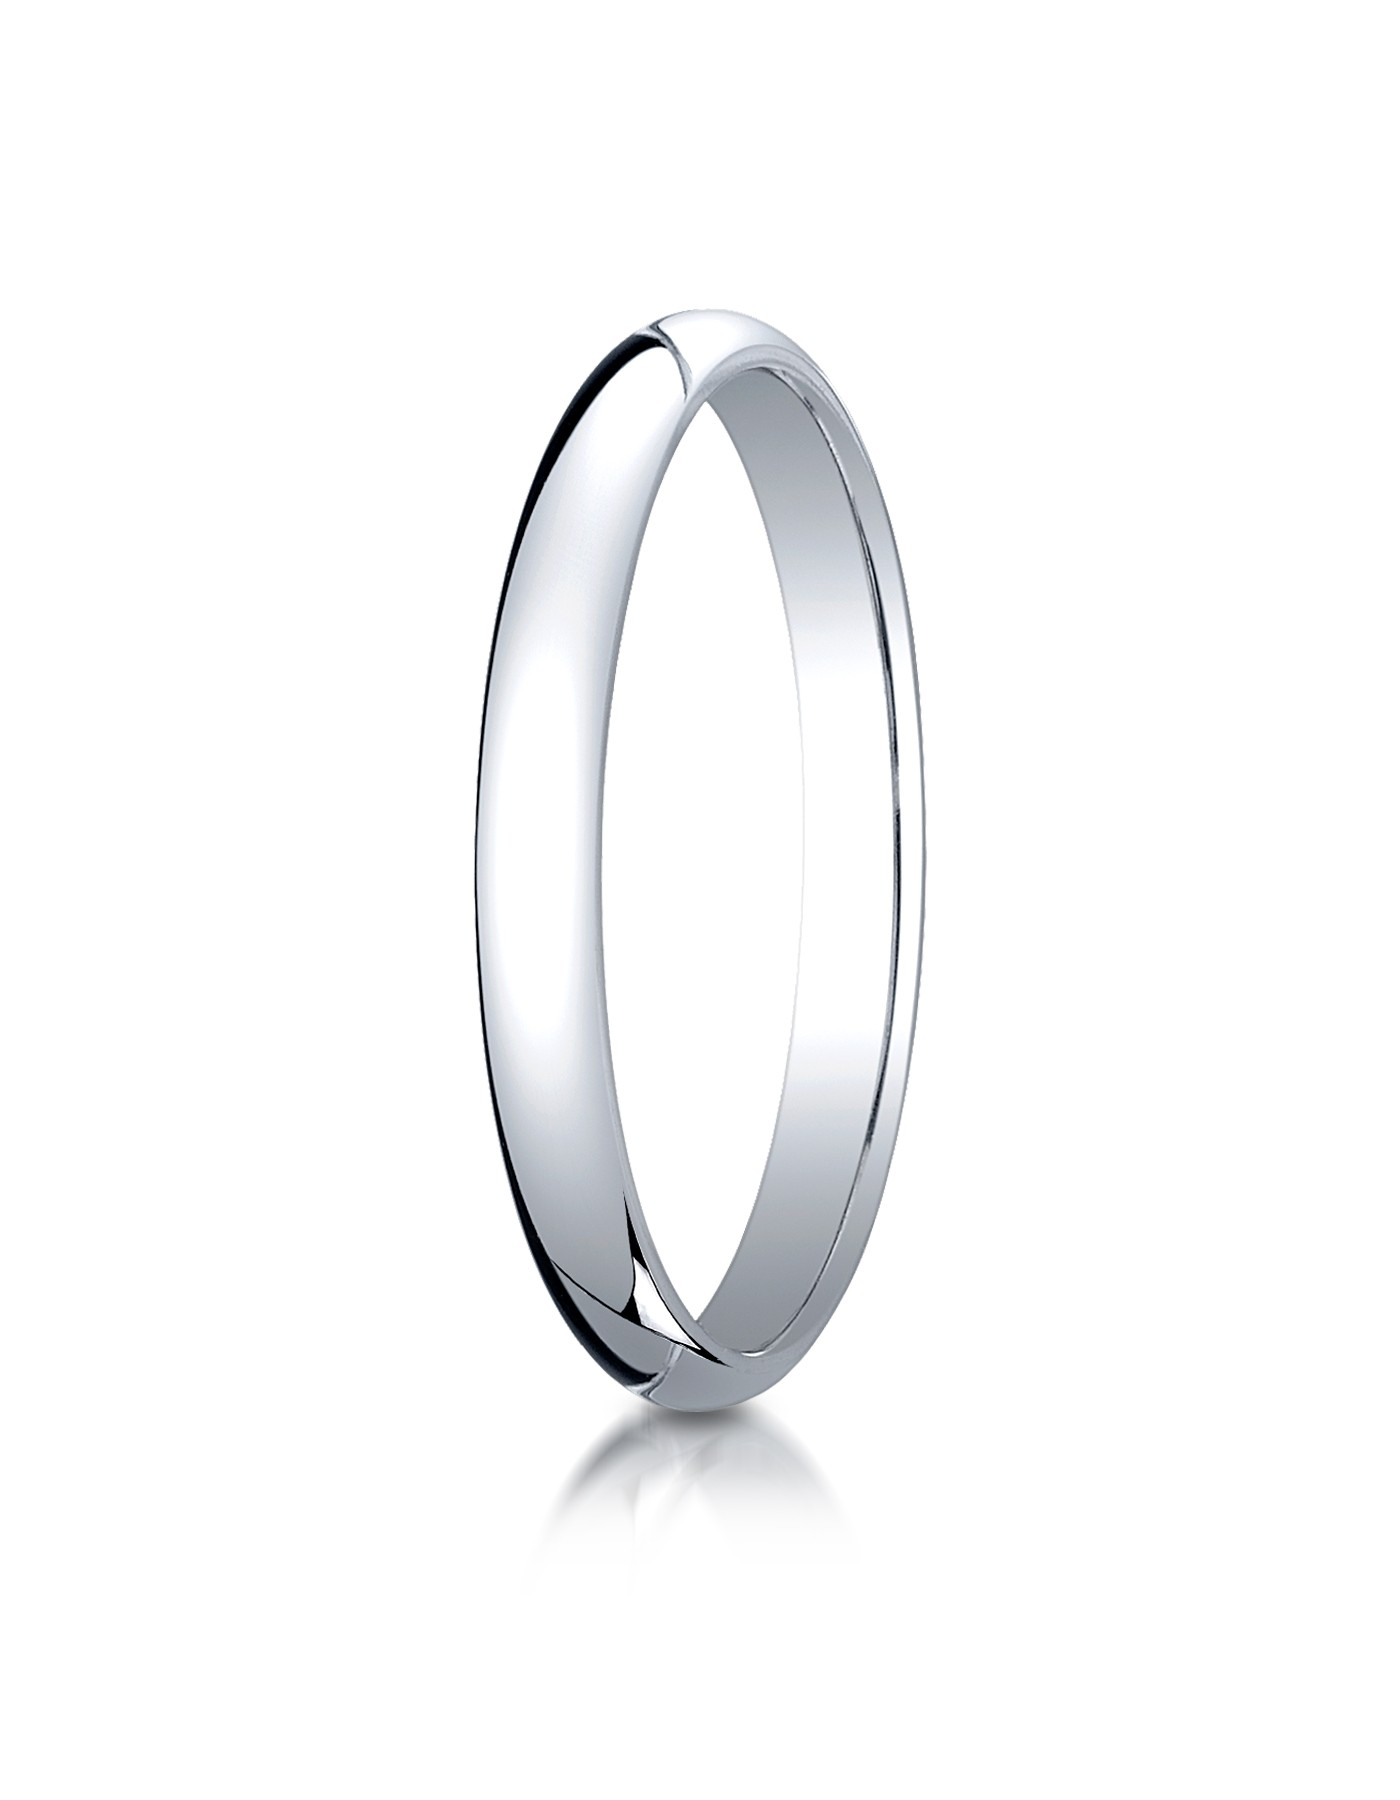 14k White Gold 2.5 Mm Slightly Domed Traditional Oval Ring